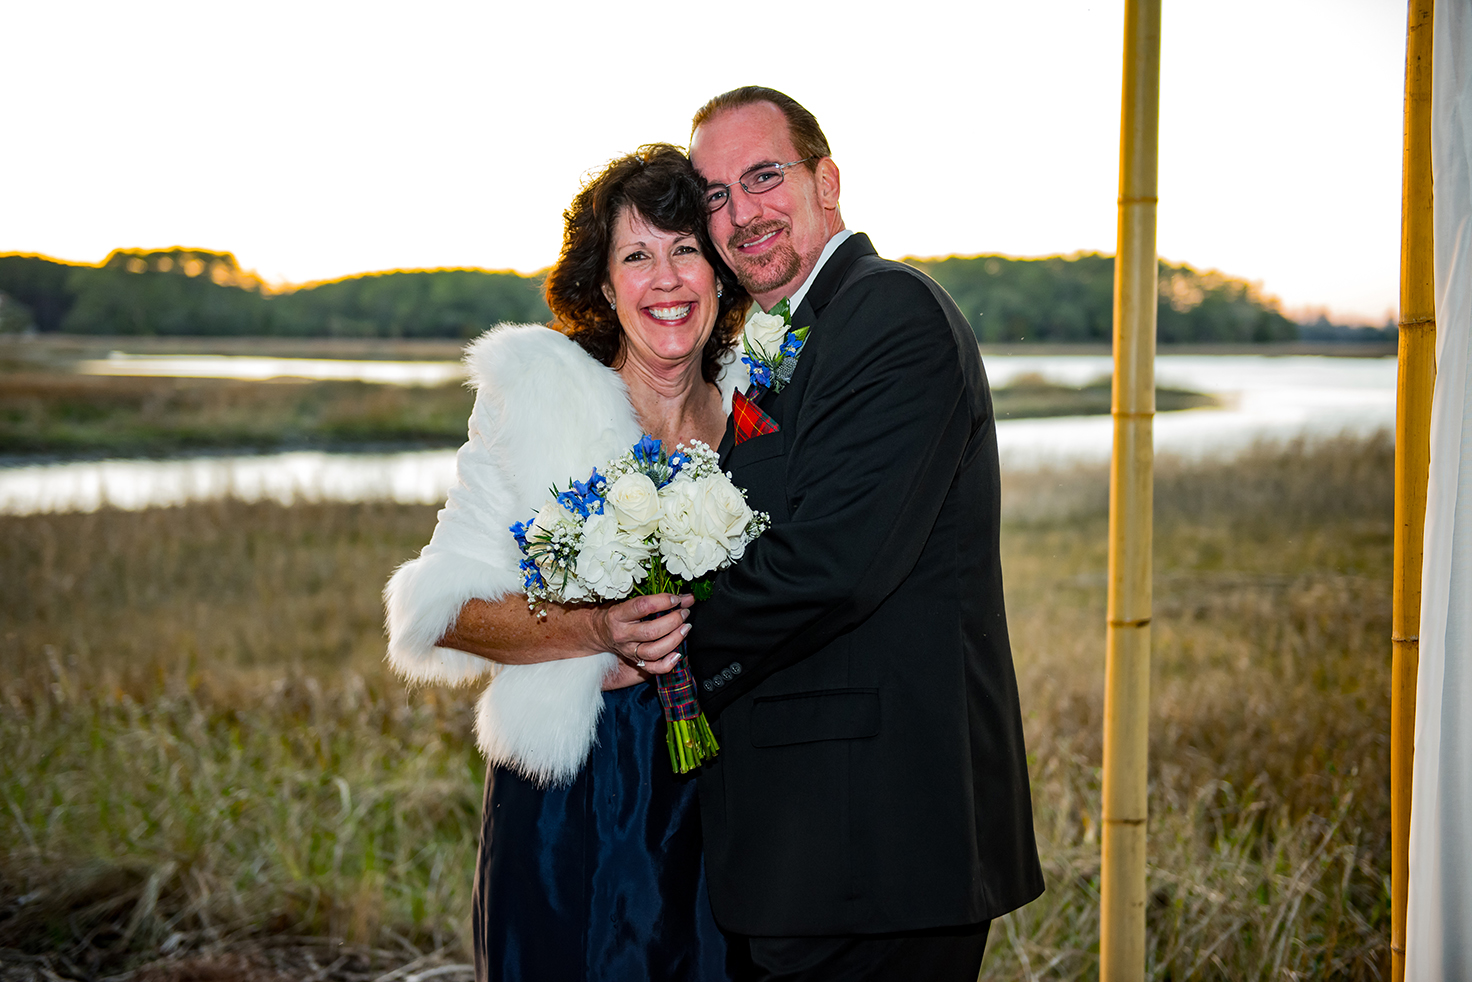 Mike and Kathy Wedding.jpg